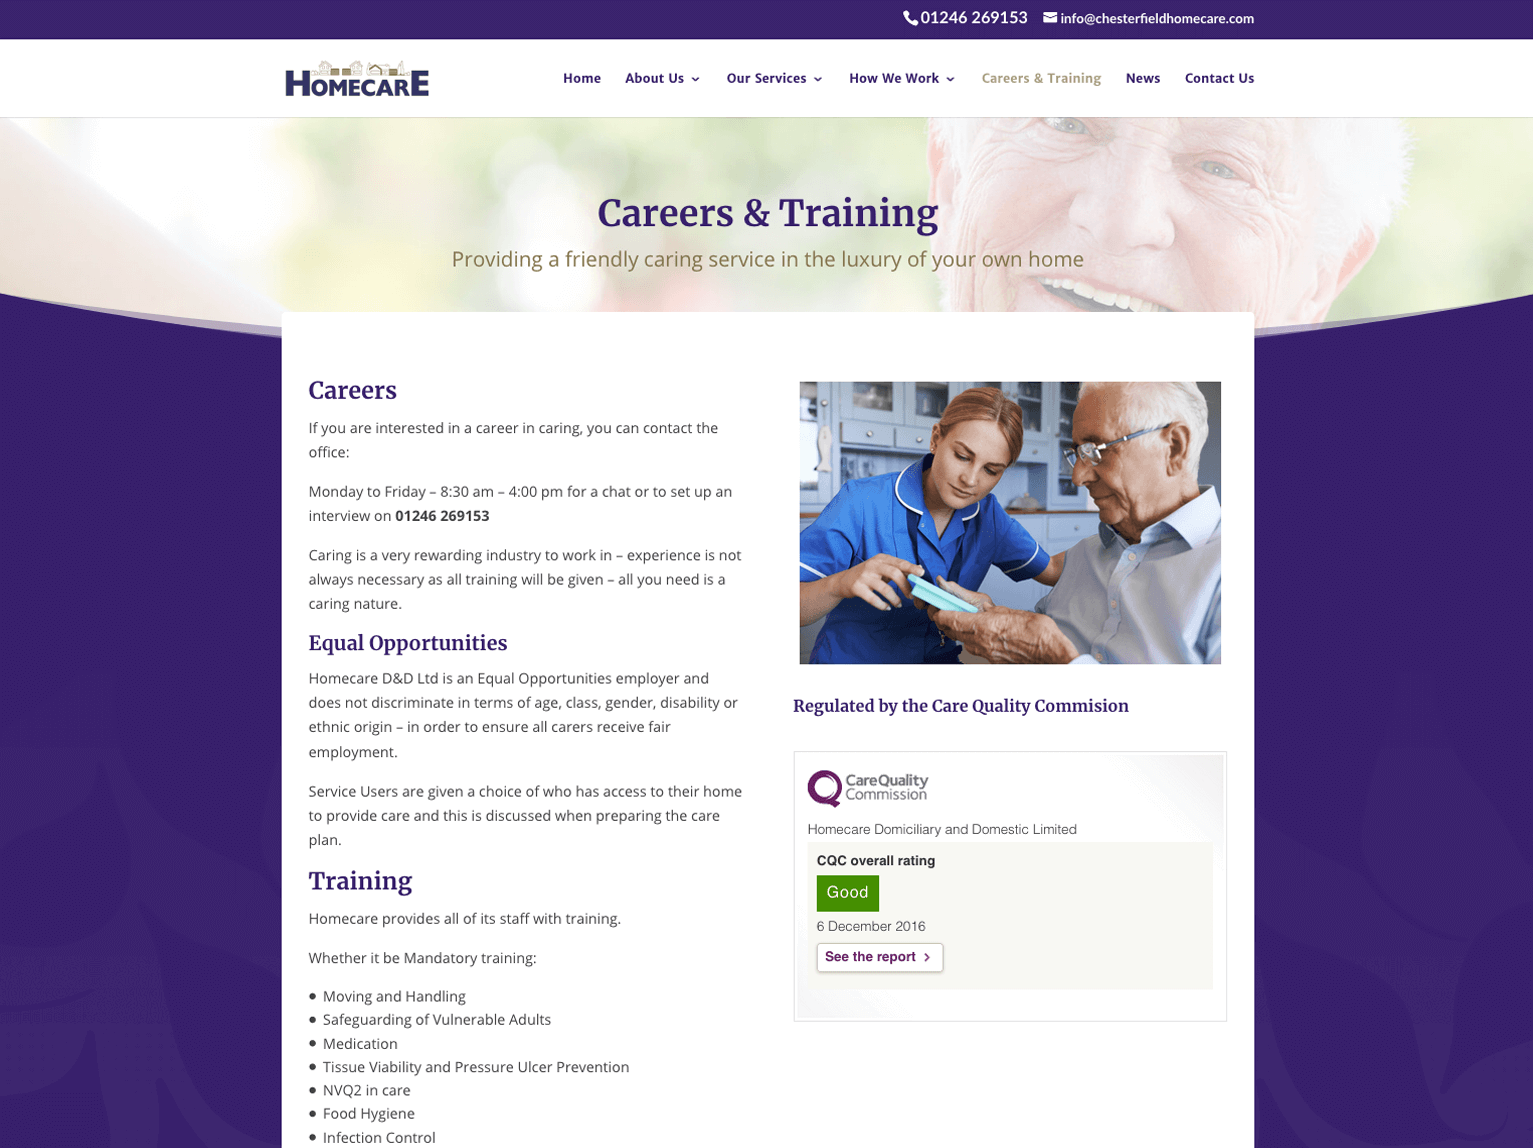 Homecare Chesterfield Careers & Training page